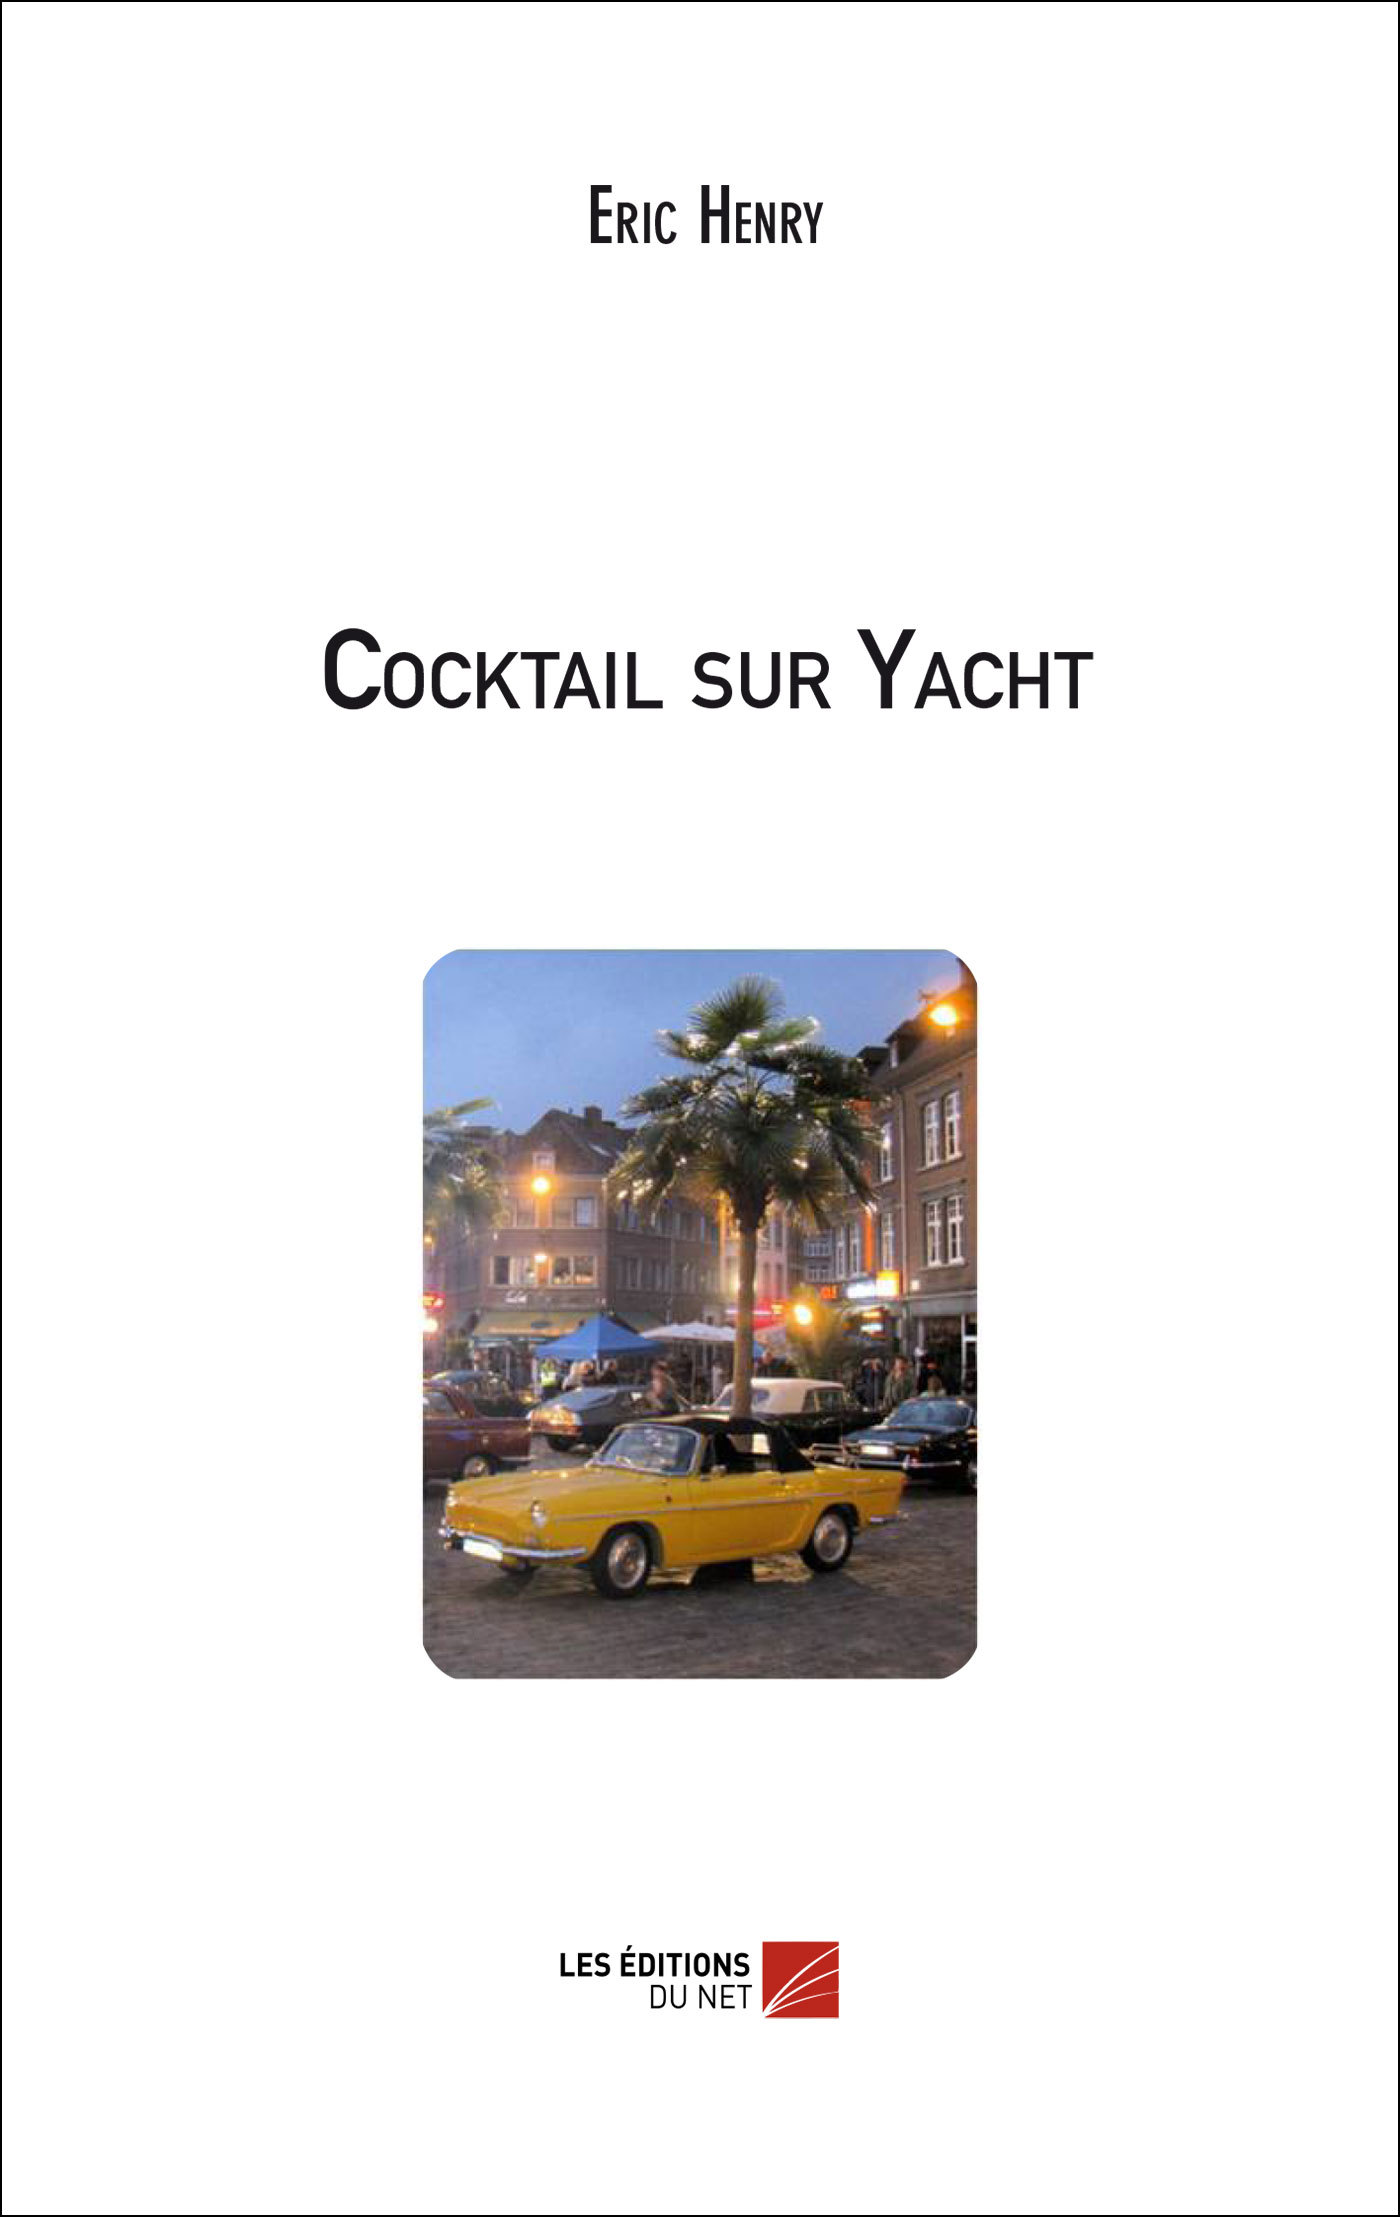 COCKTAIL SUR YACHT